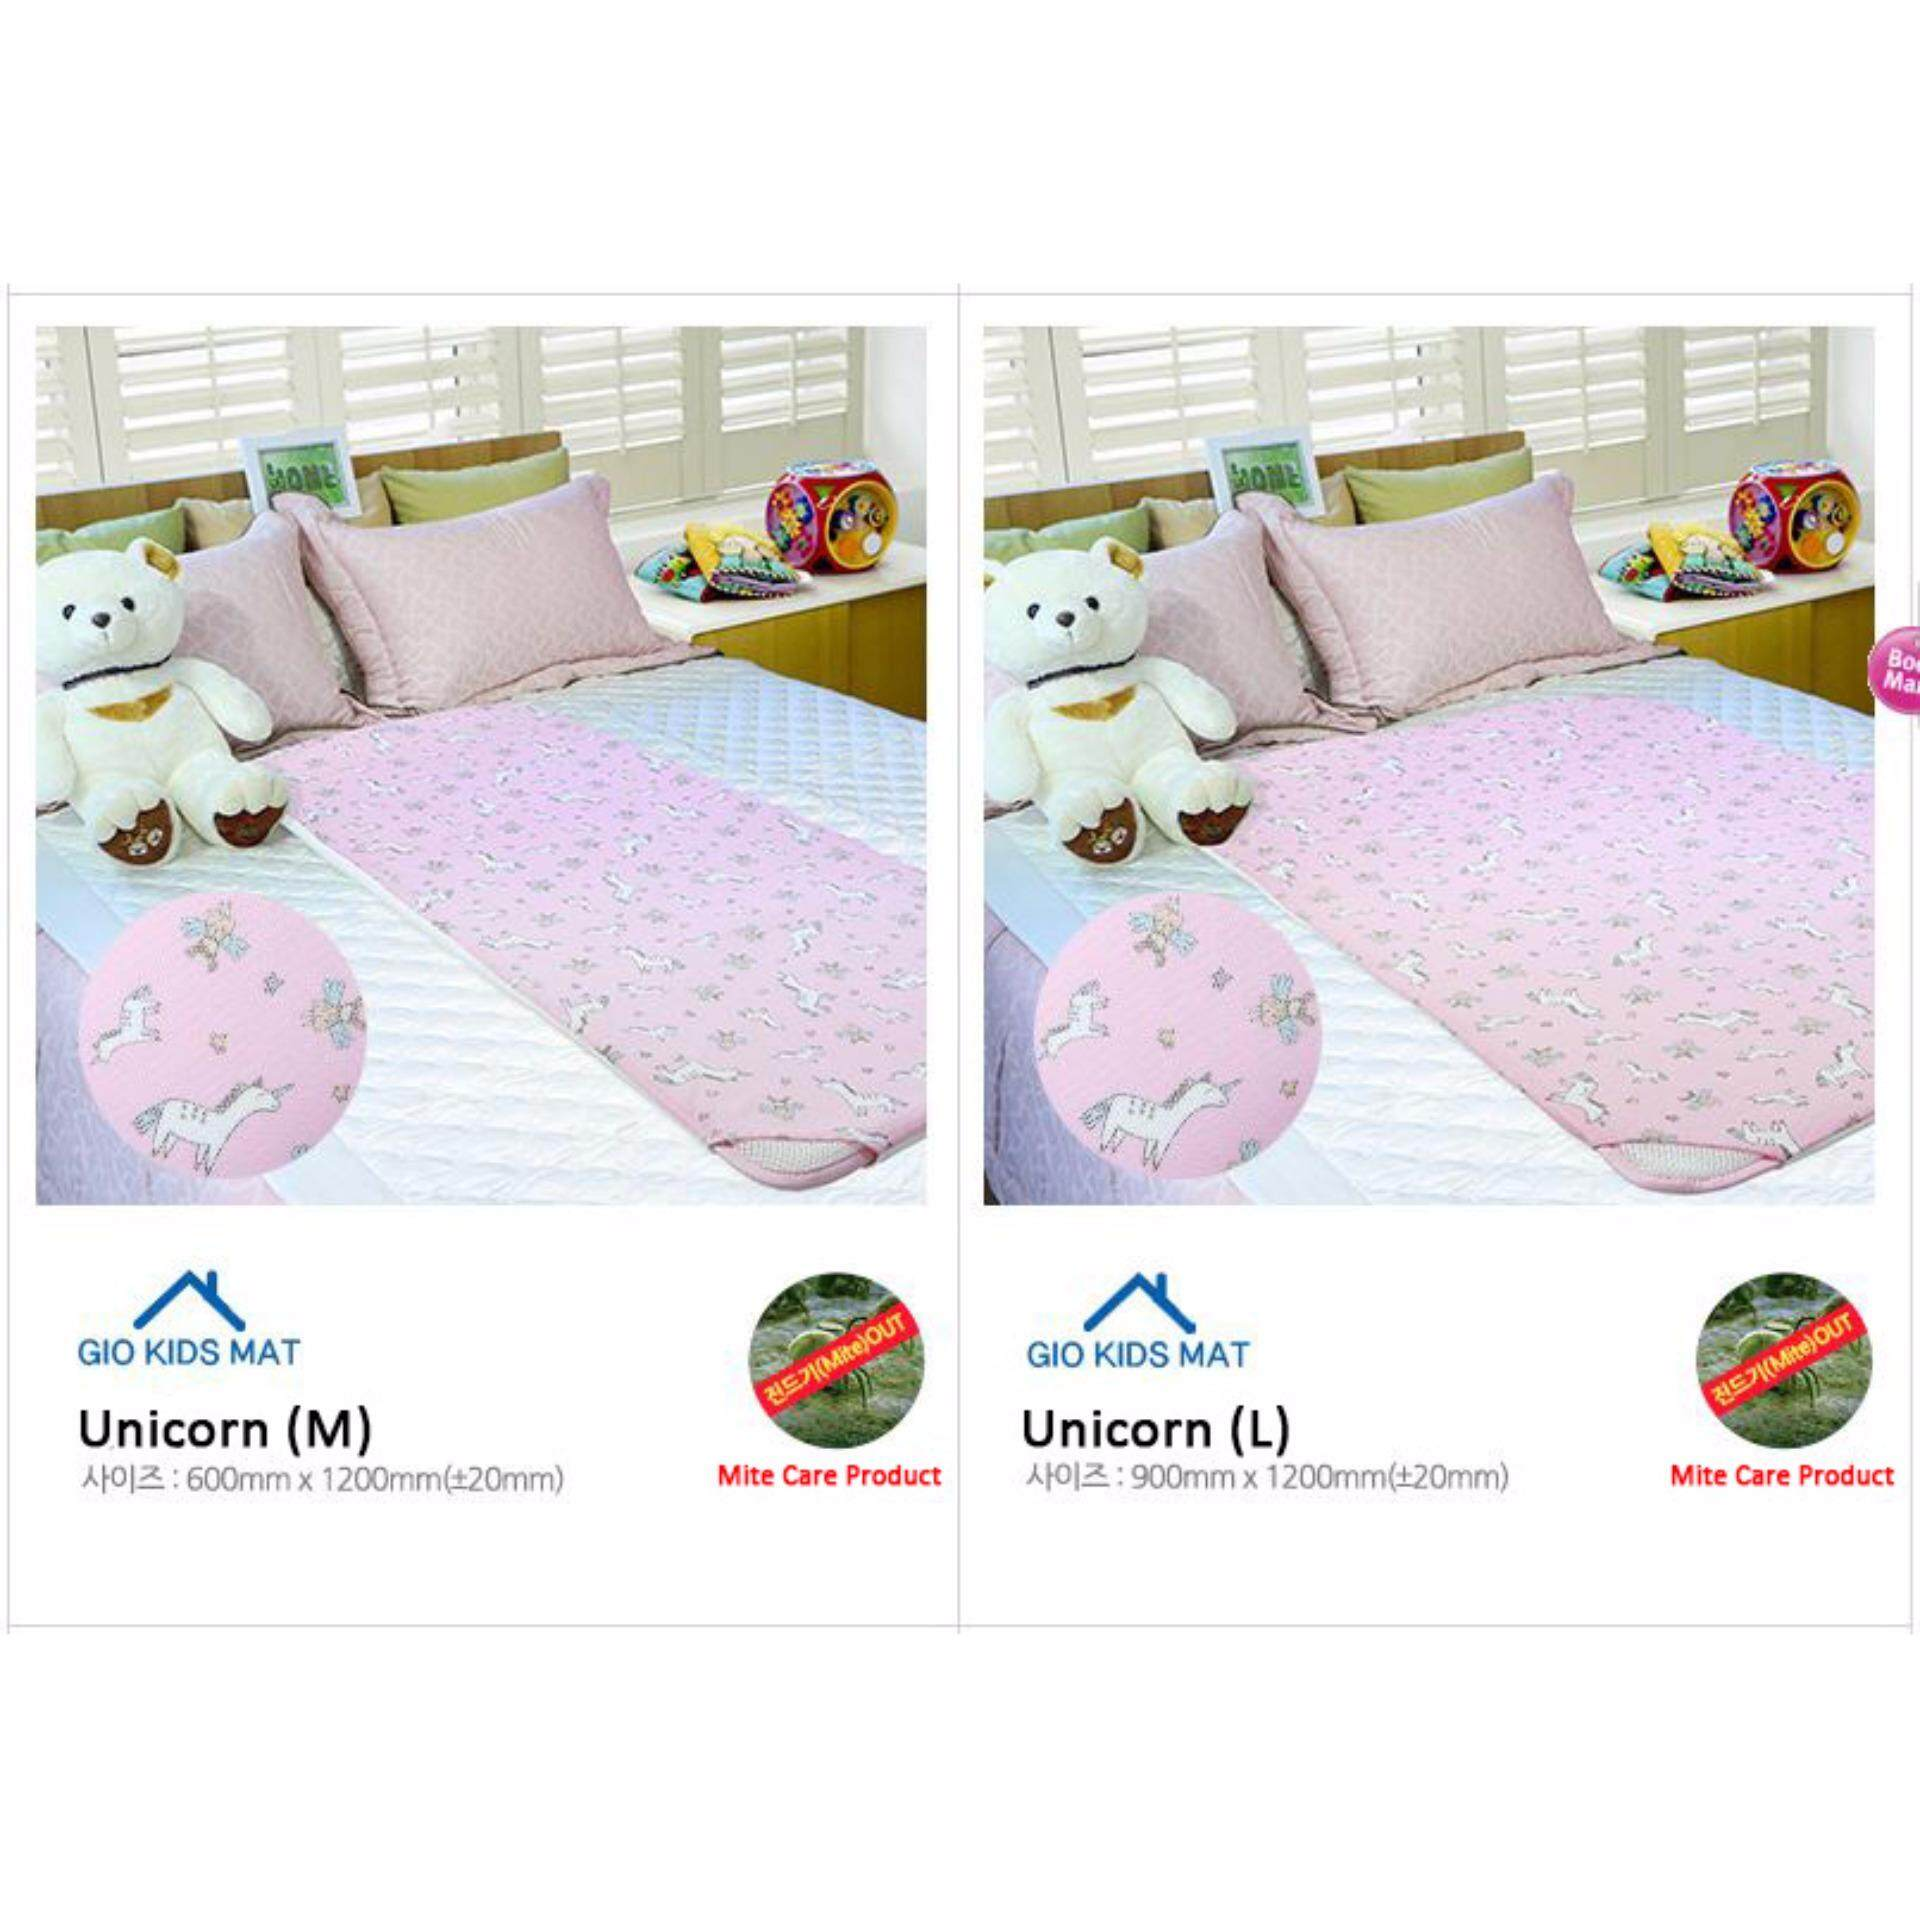 GIO KIDS MAT 2 in 1 Unicorn M Size with Carrier Bag